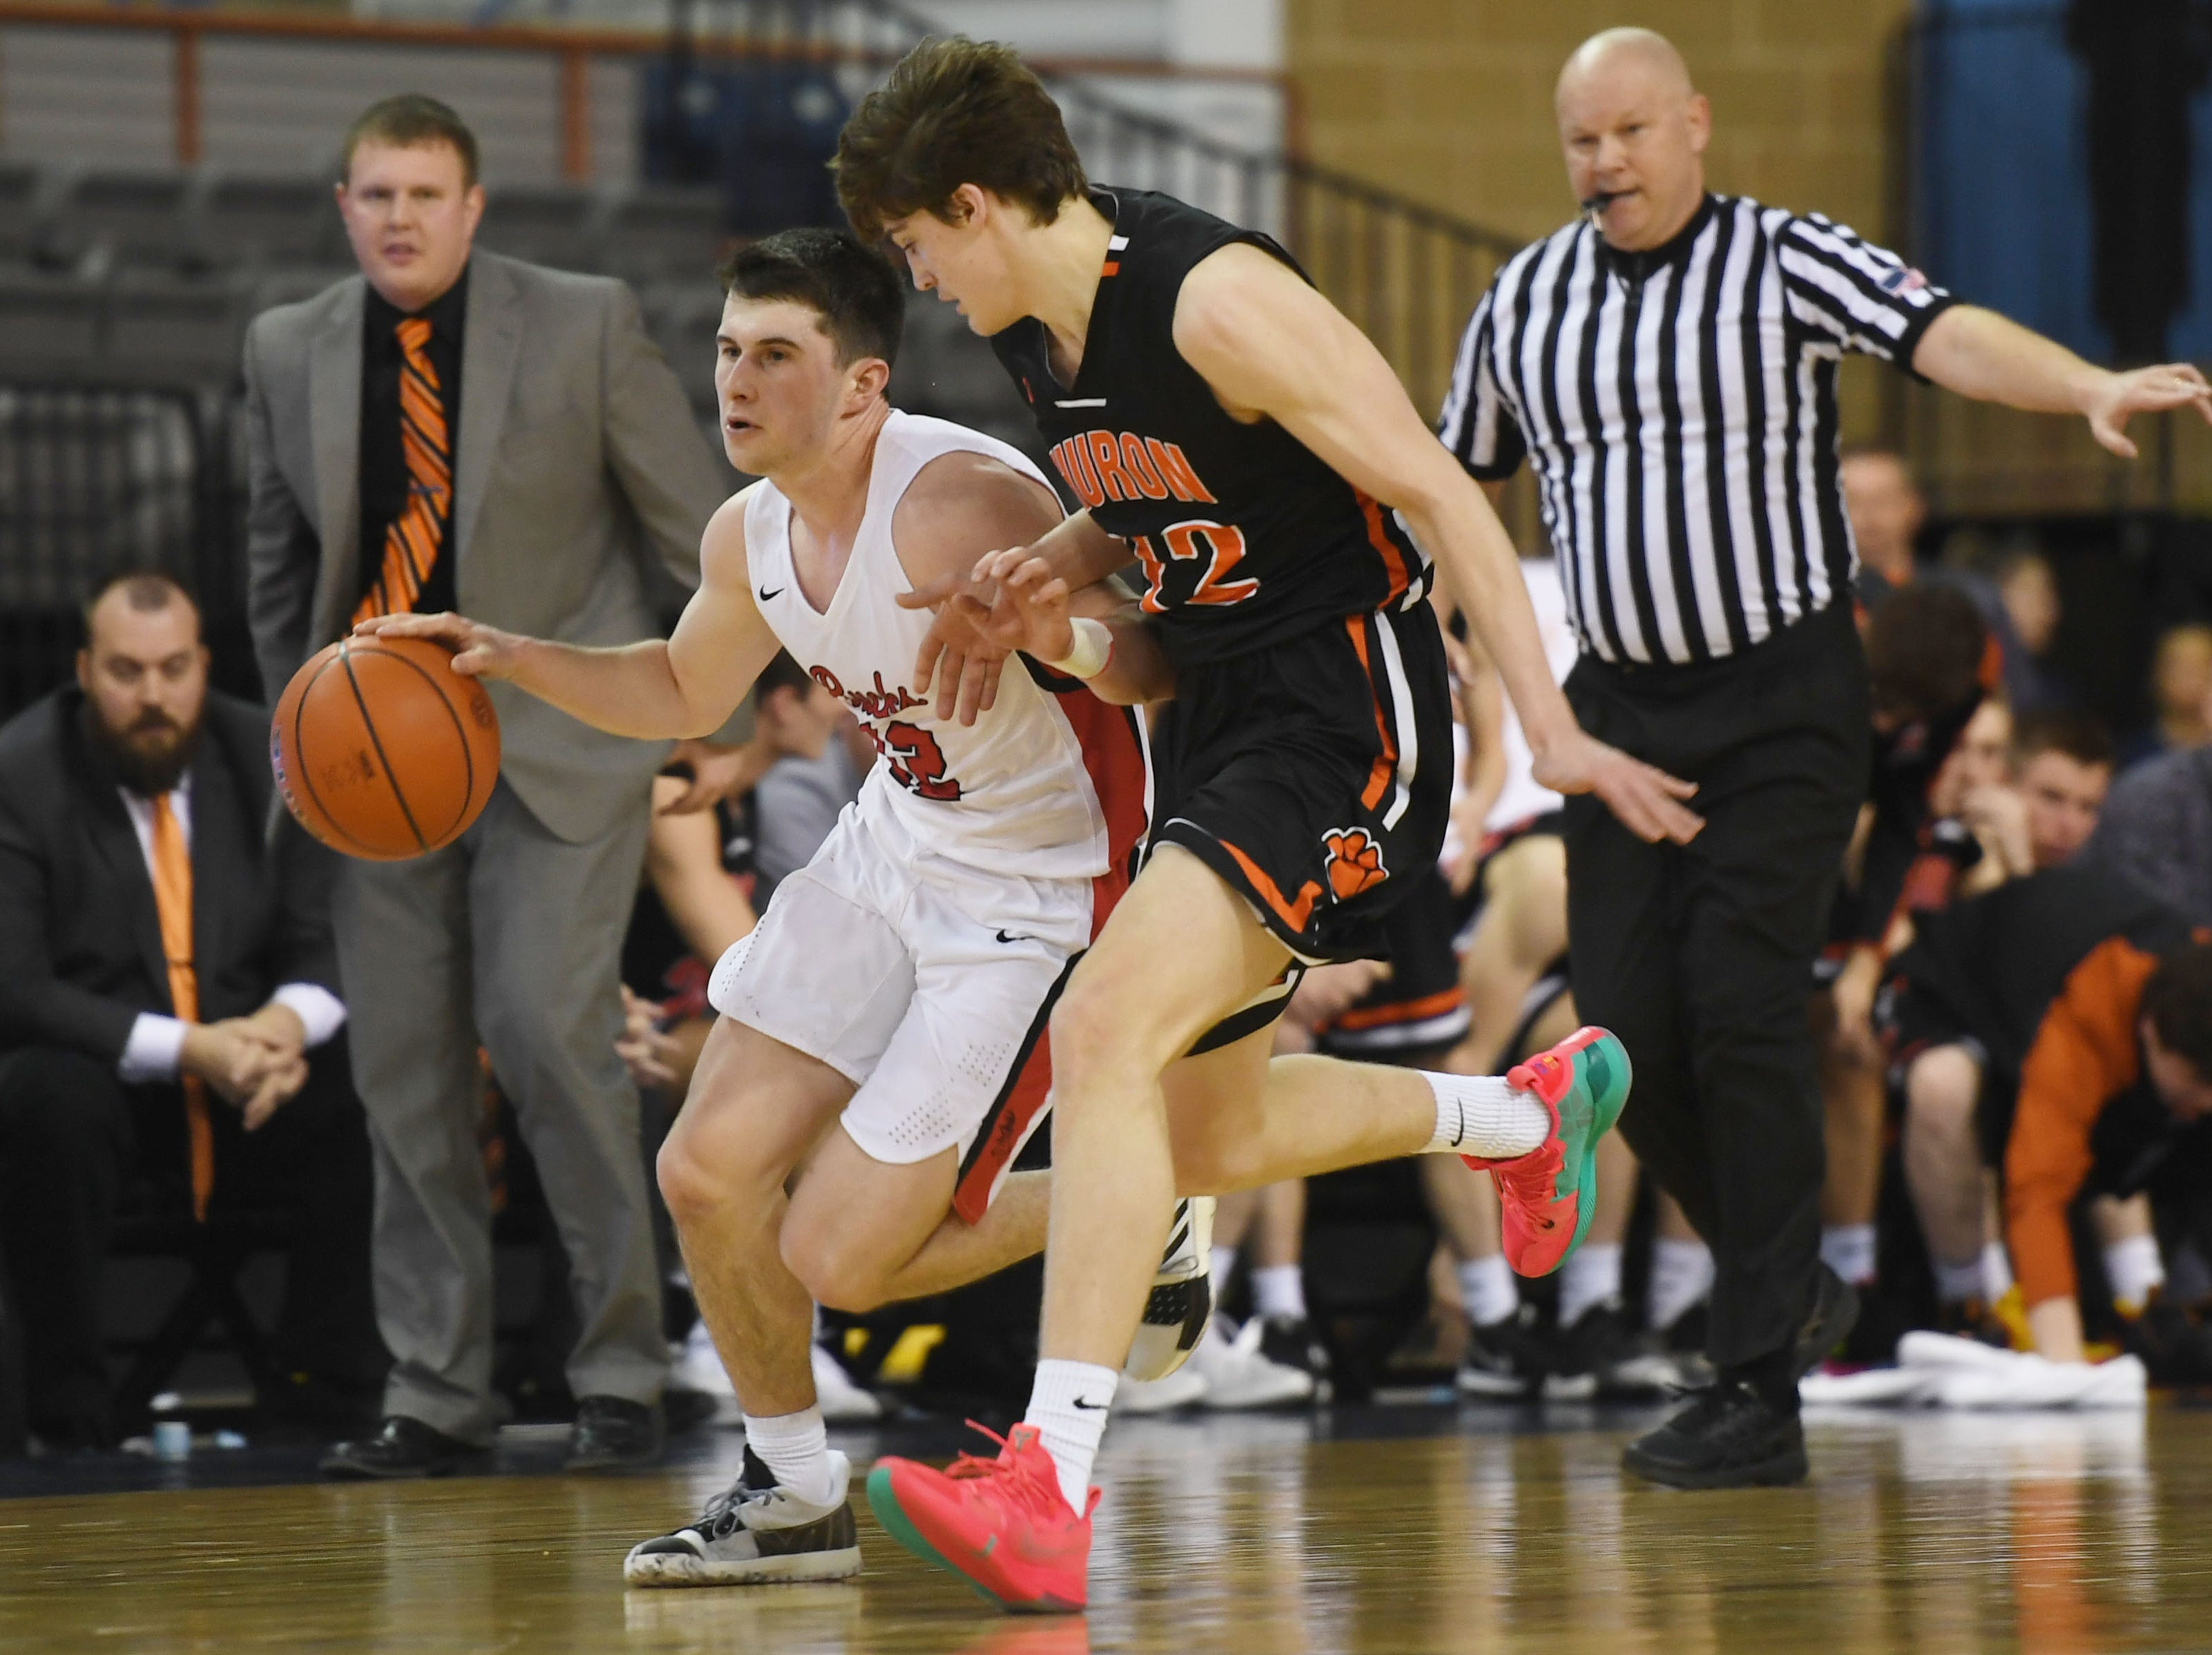 Yankton's Owen Feser goes against Huron defense in the Class AA quarterfinals Thursday, March 14, in Rapid City.